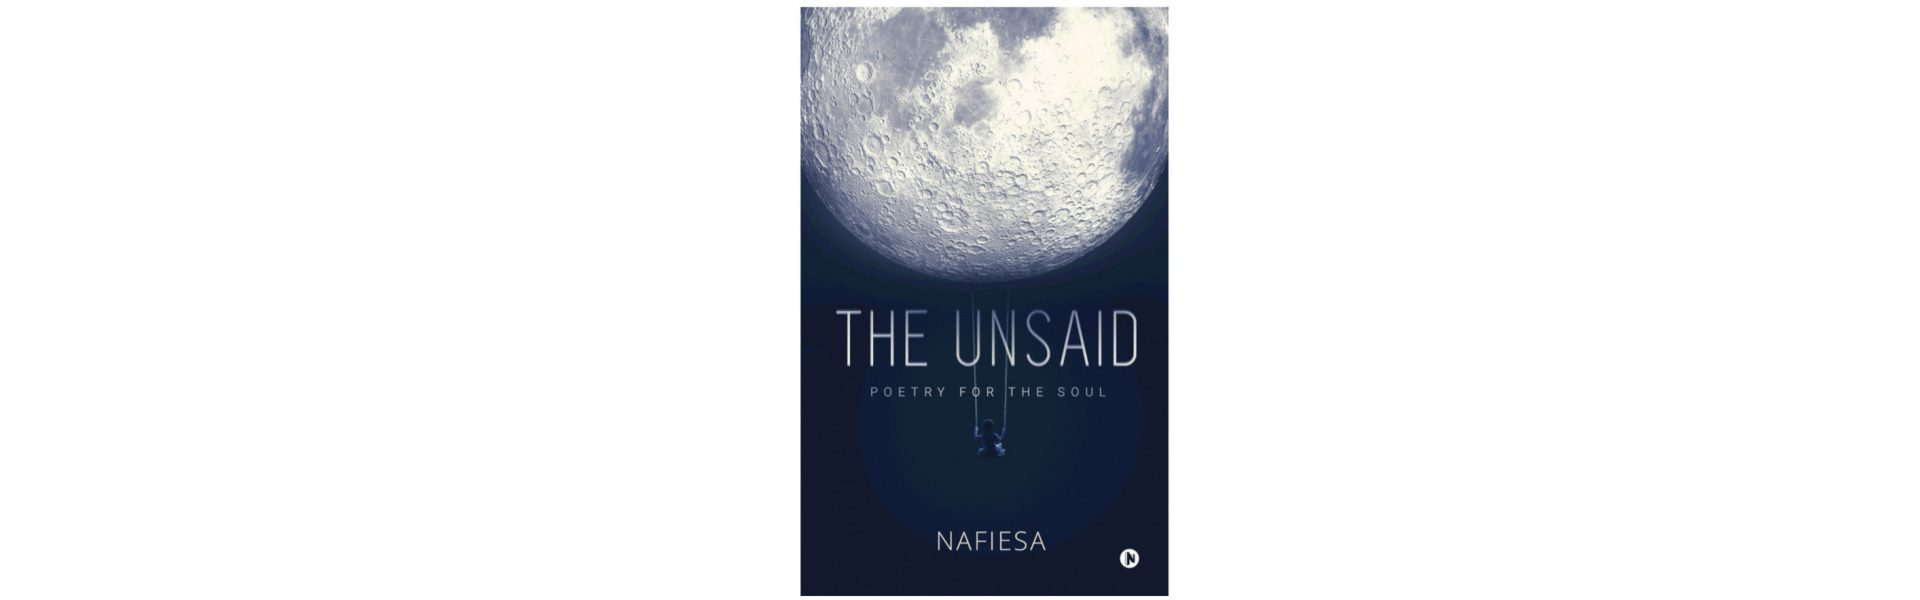 The Unsaid - Book Review